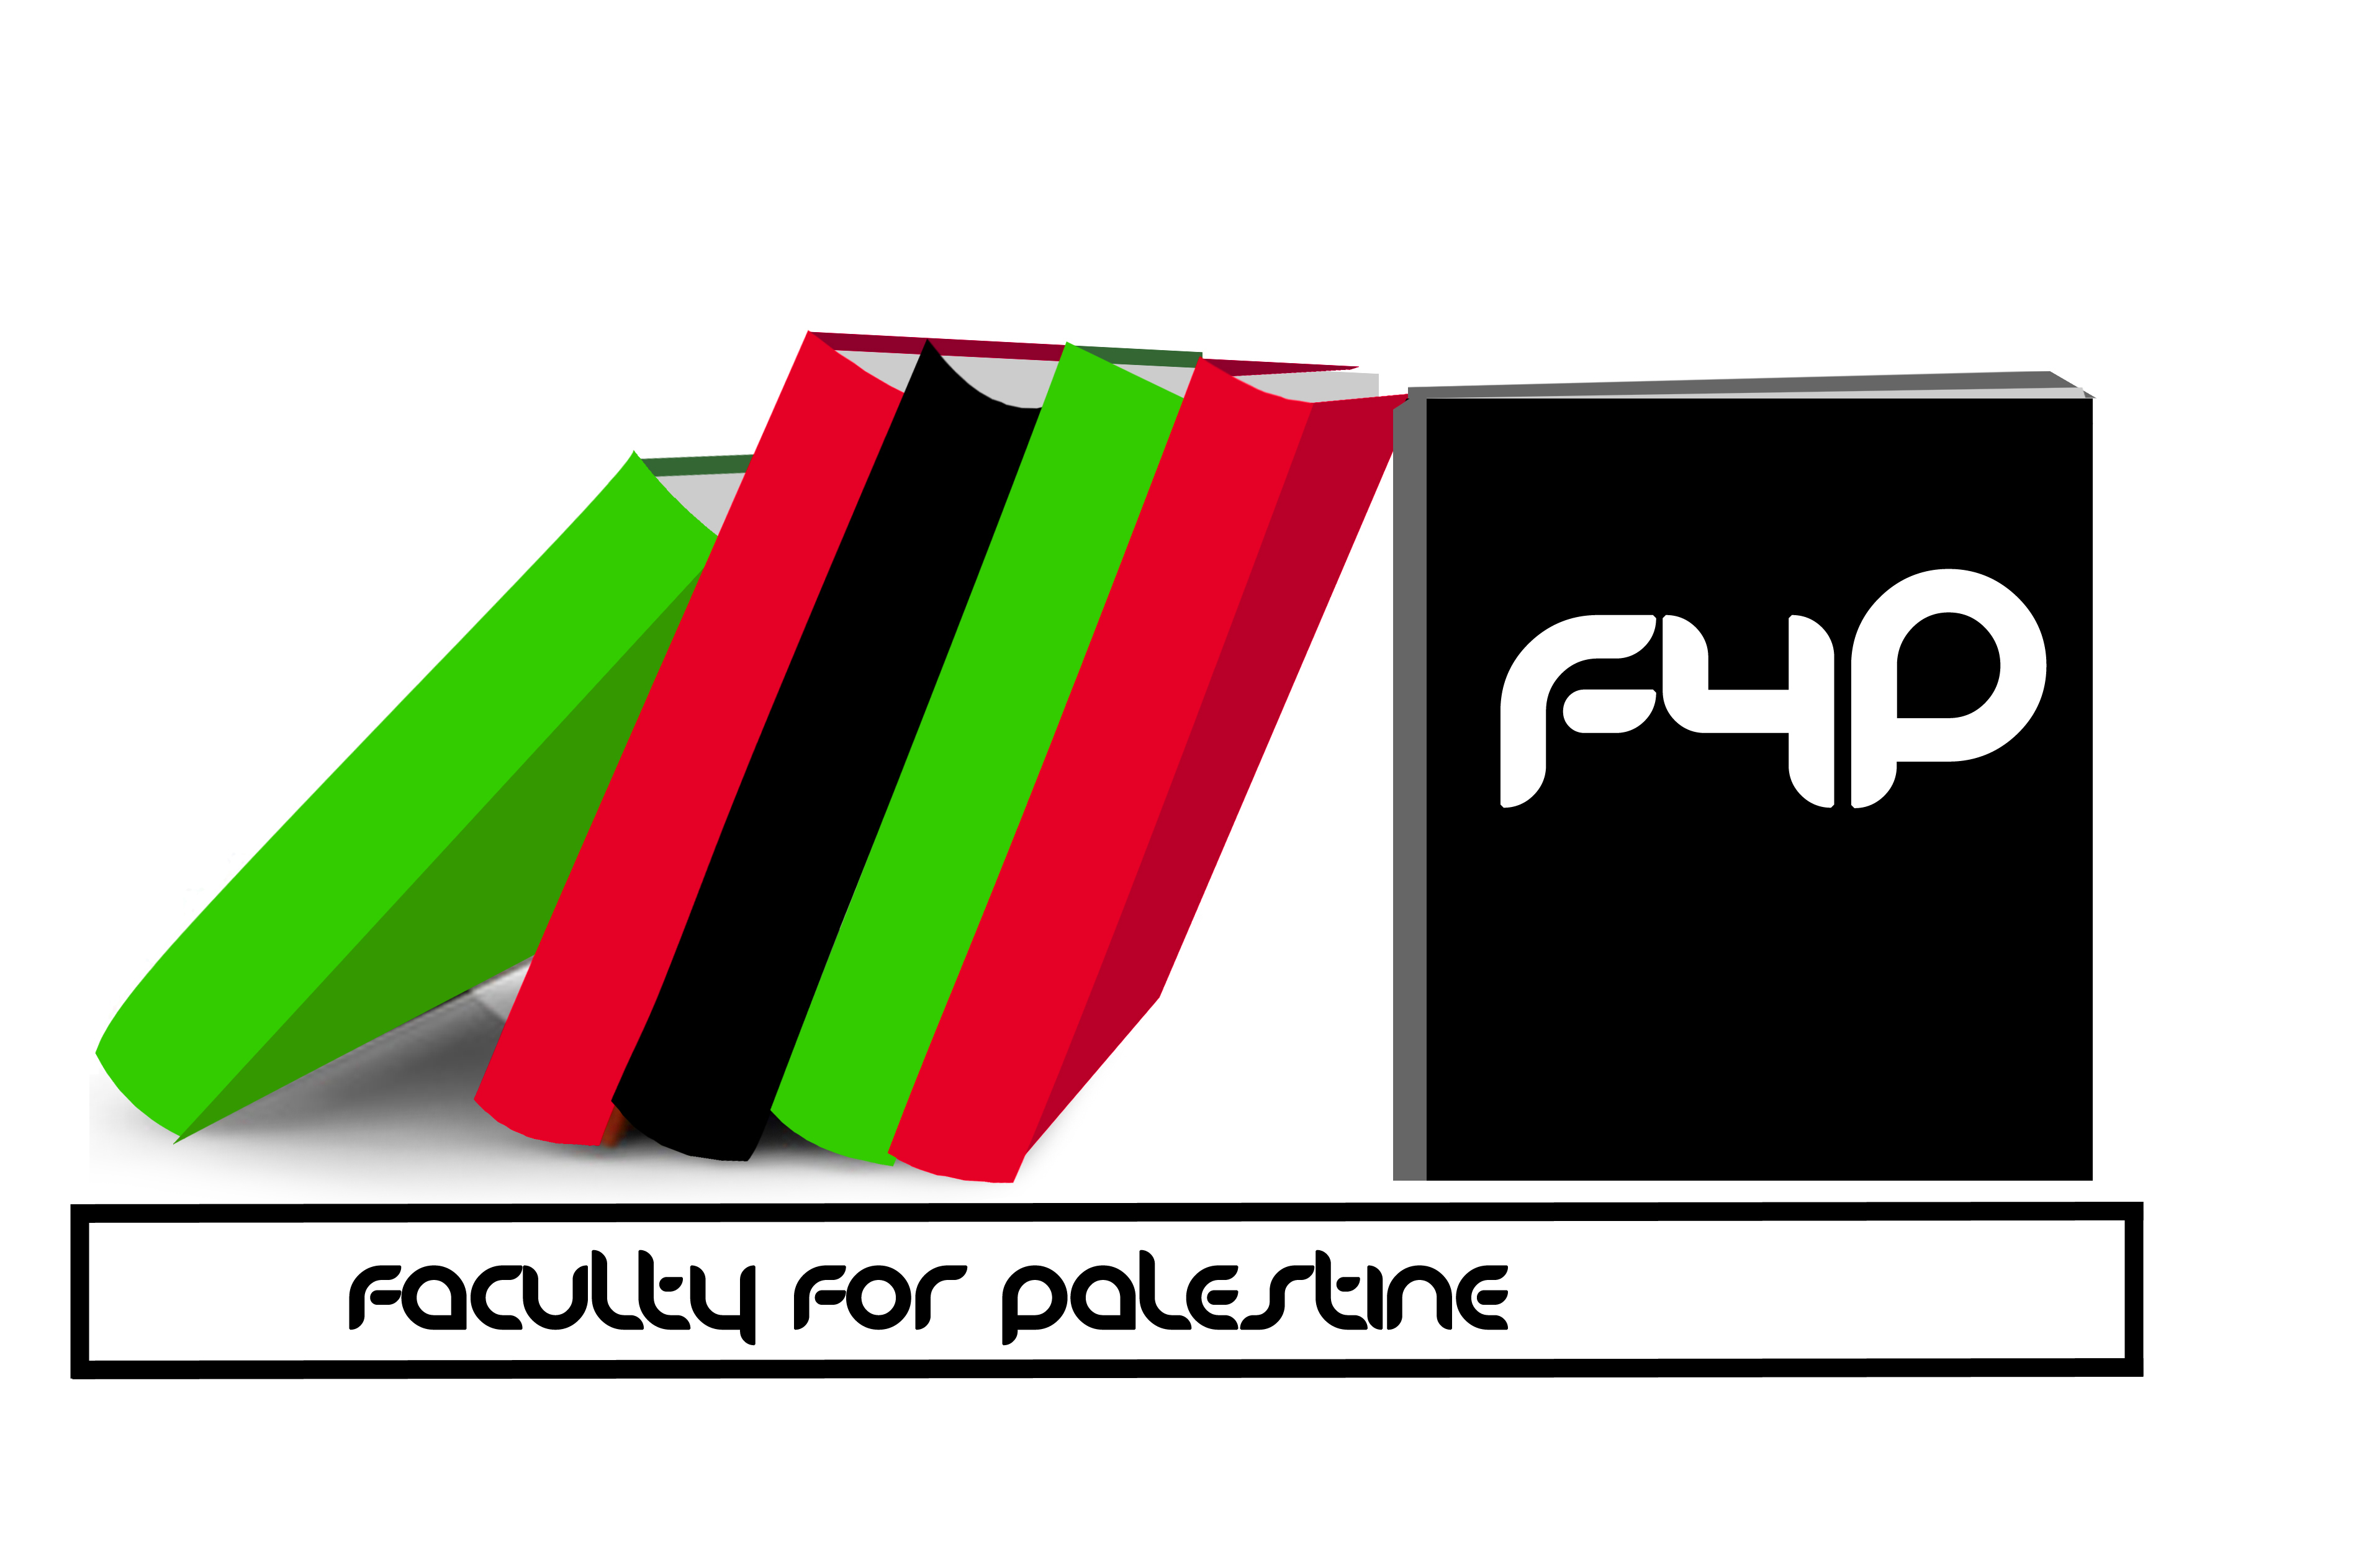 Logo for Faculty for Palestine Canada